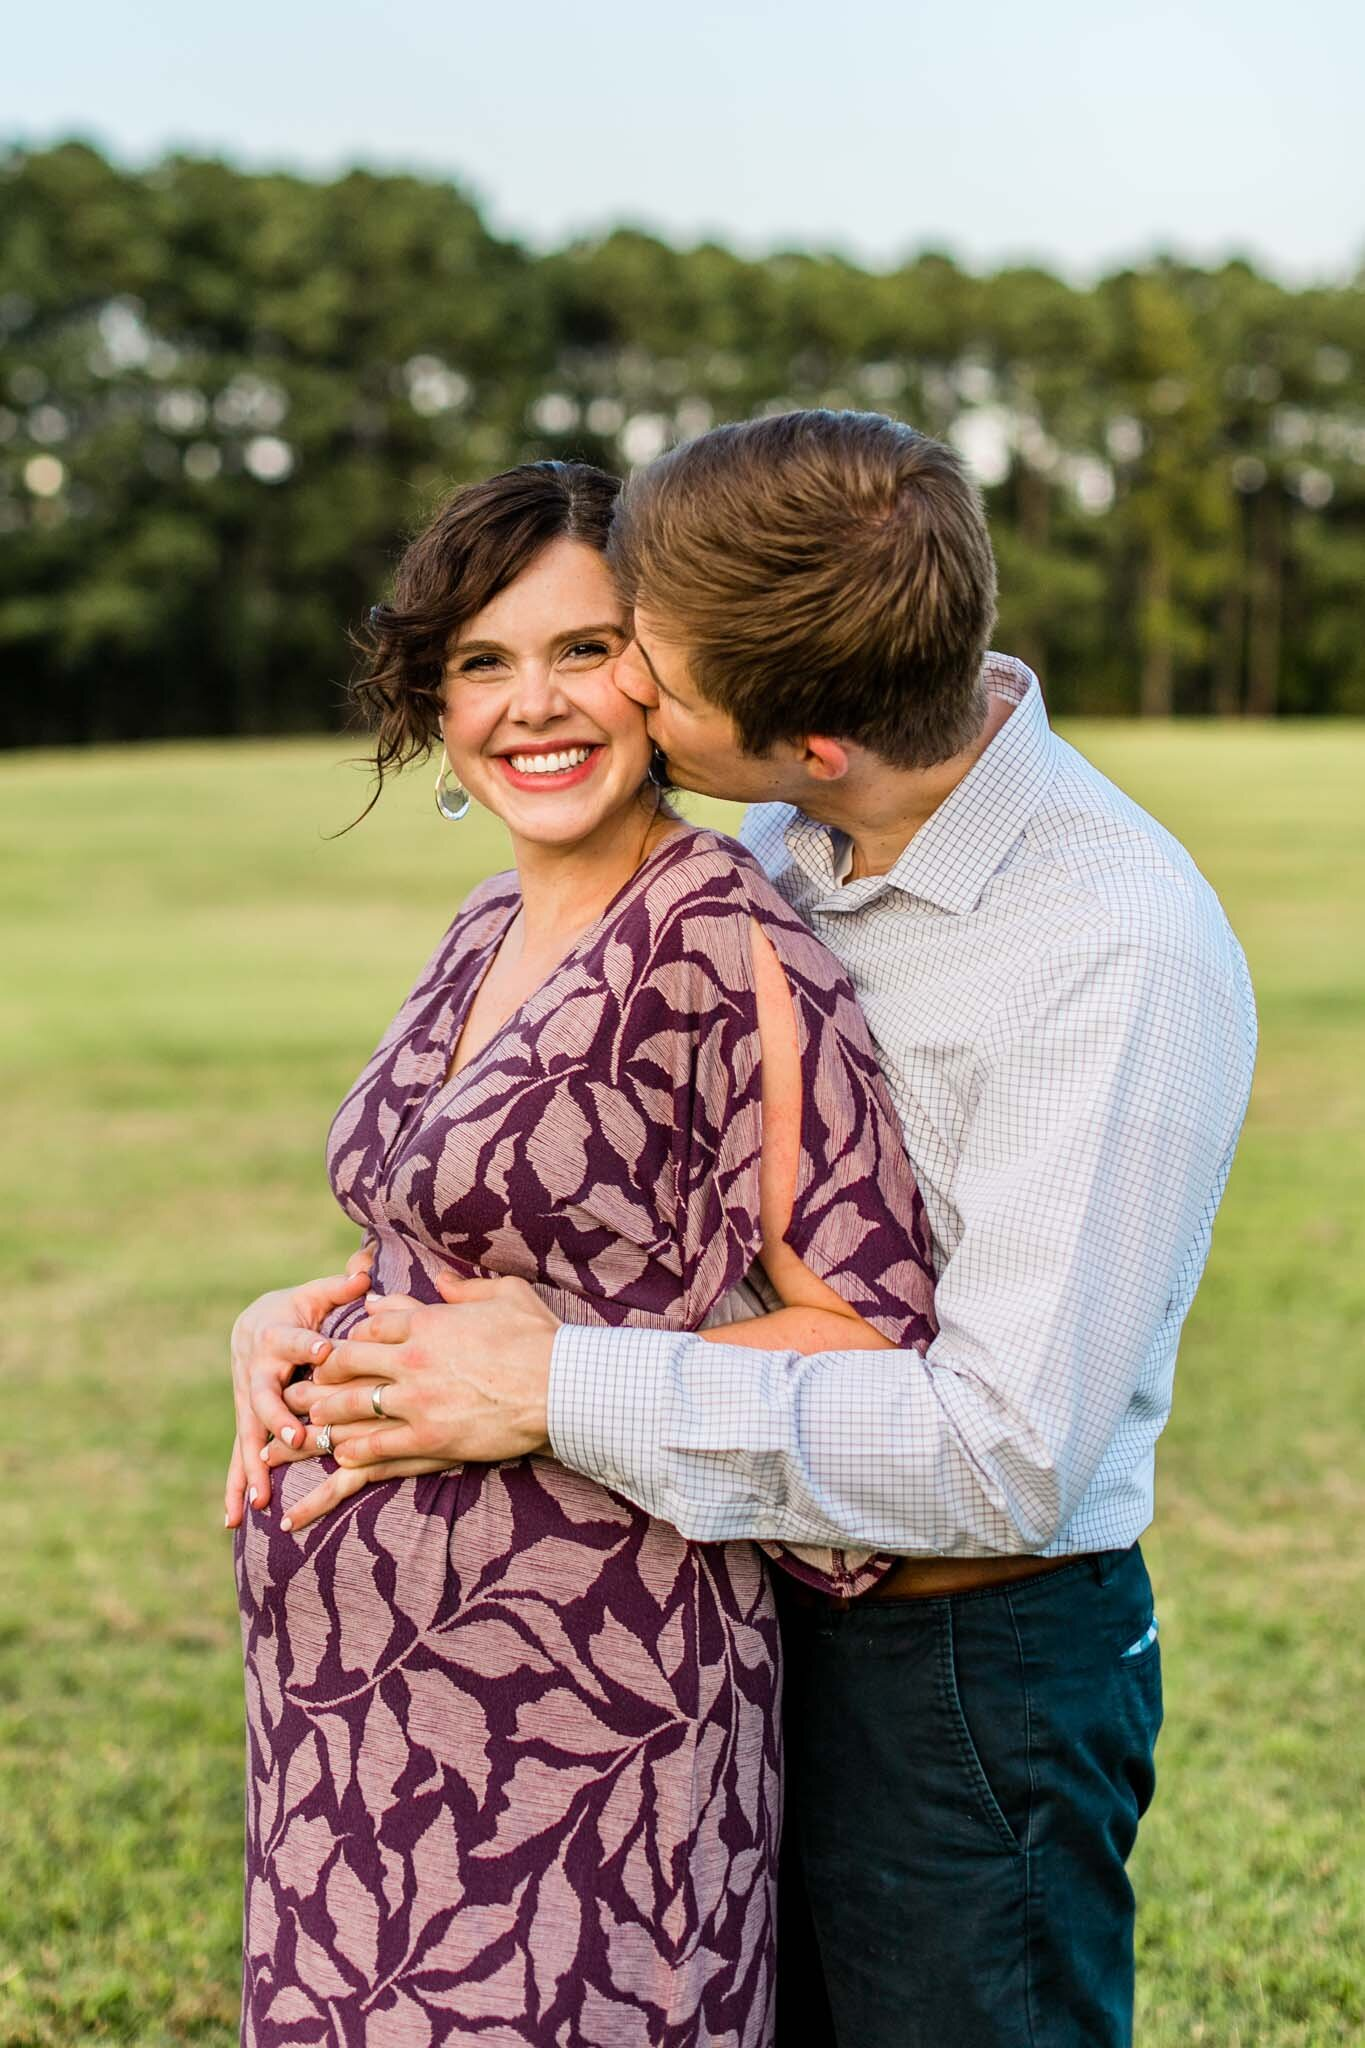 Raleigh Family Photography at Dix Park | By G. Lin Photography | Husband kissing wife on the cheek